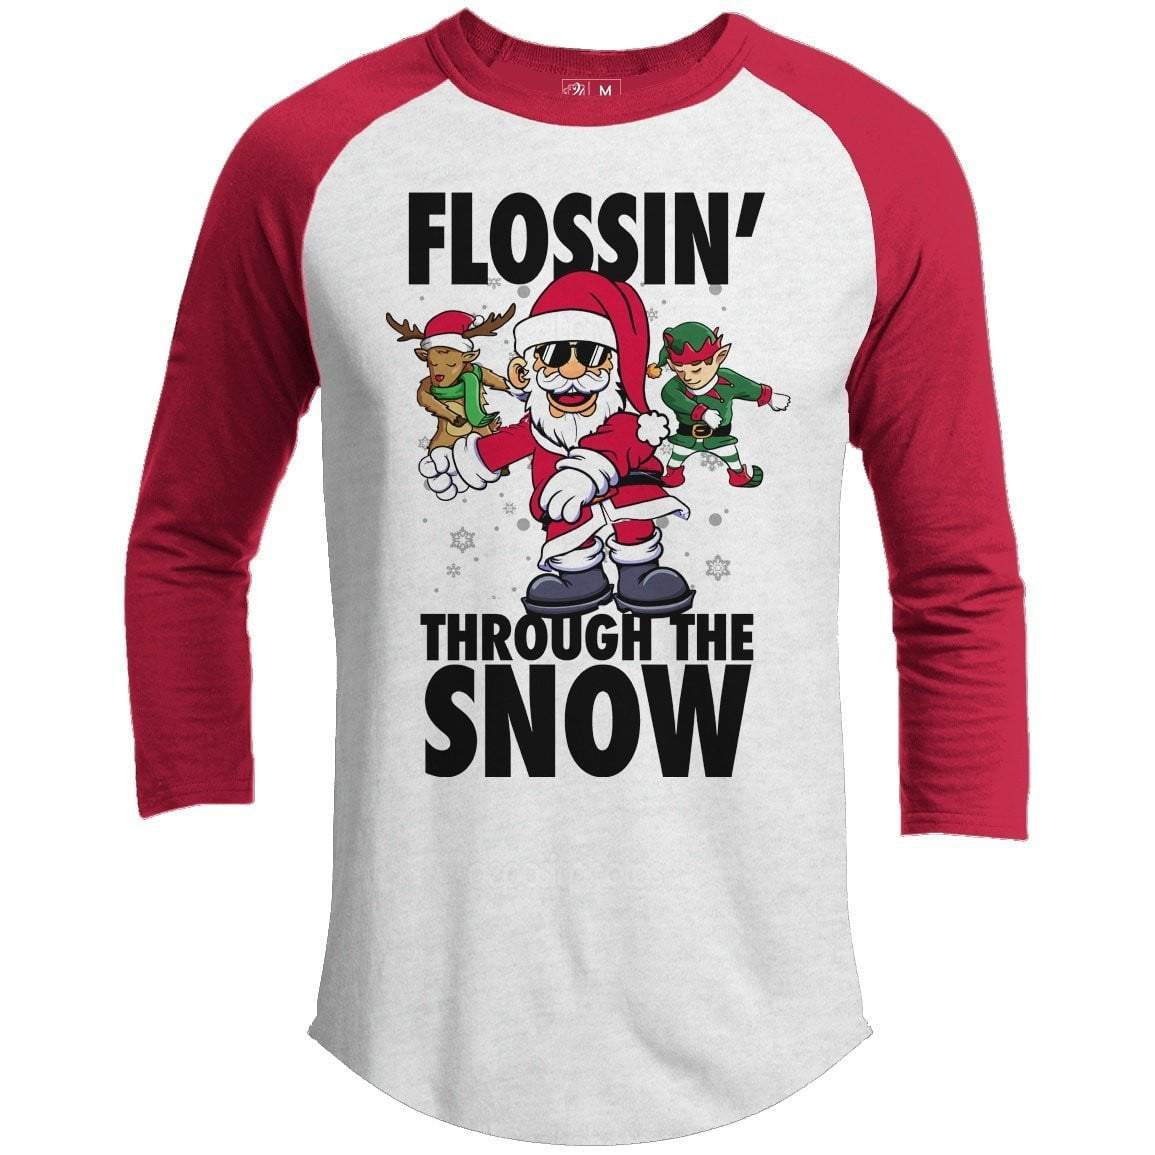 FLOSSIN THROUGH THE SNOW Premium Youth Christmas Raglan